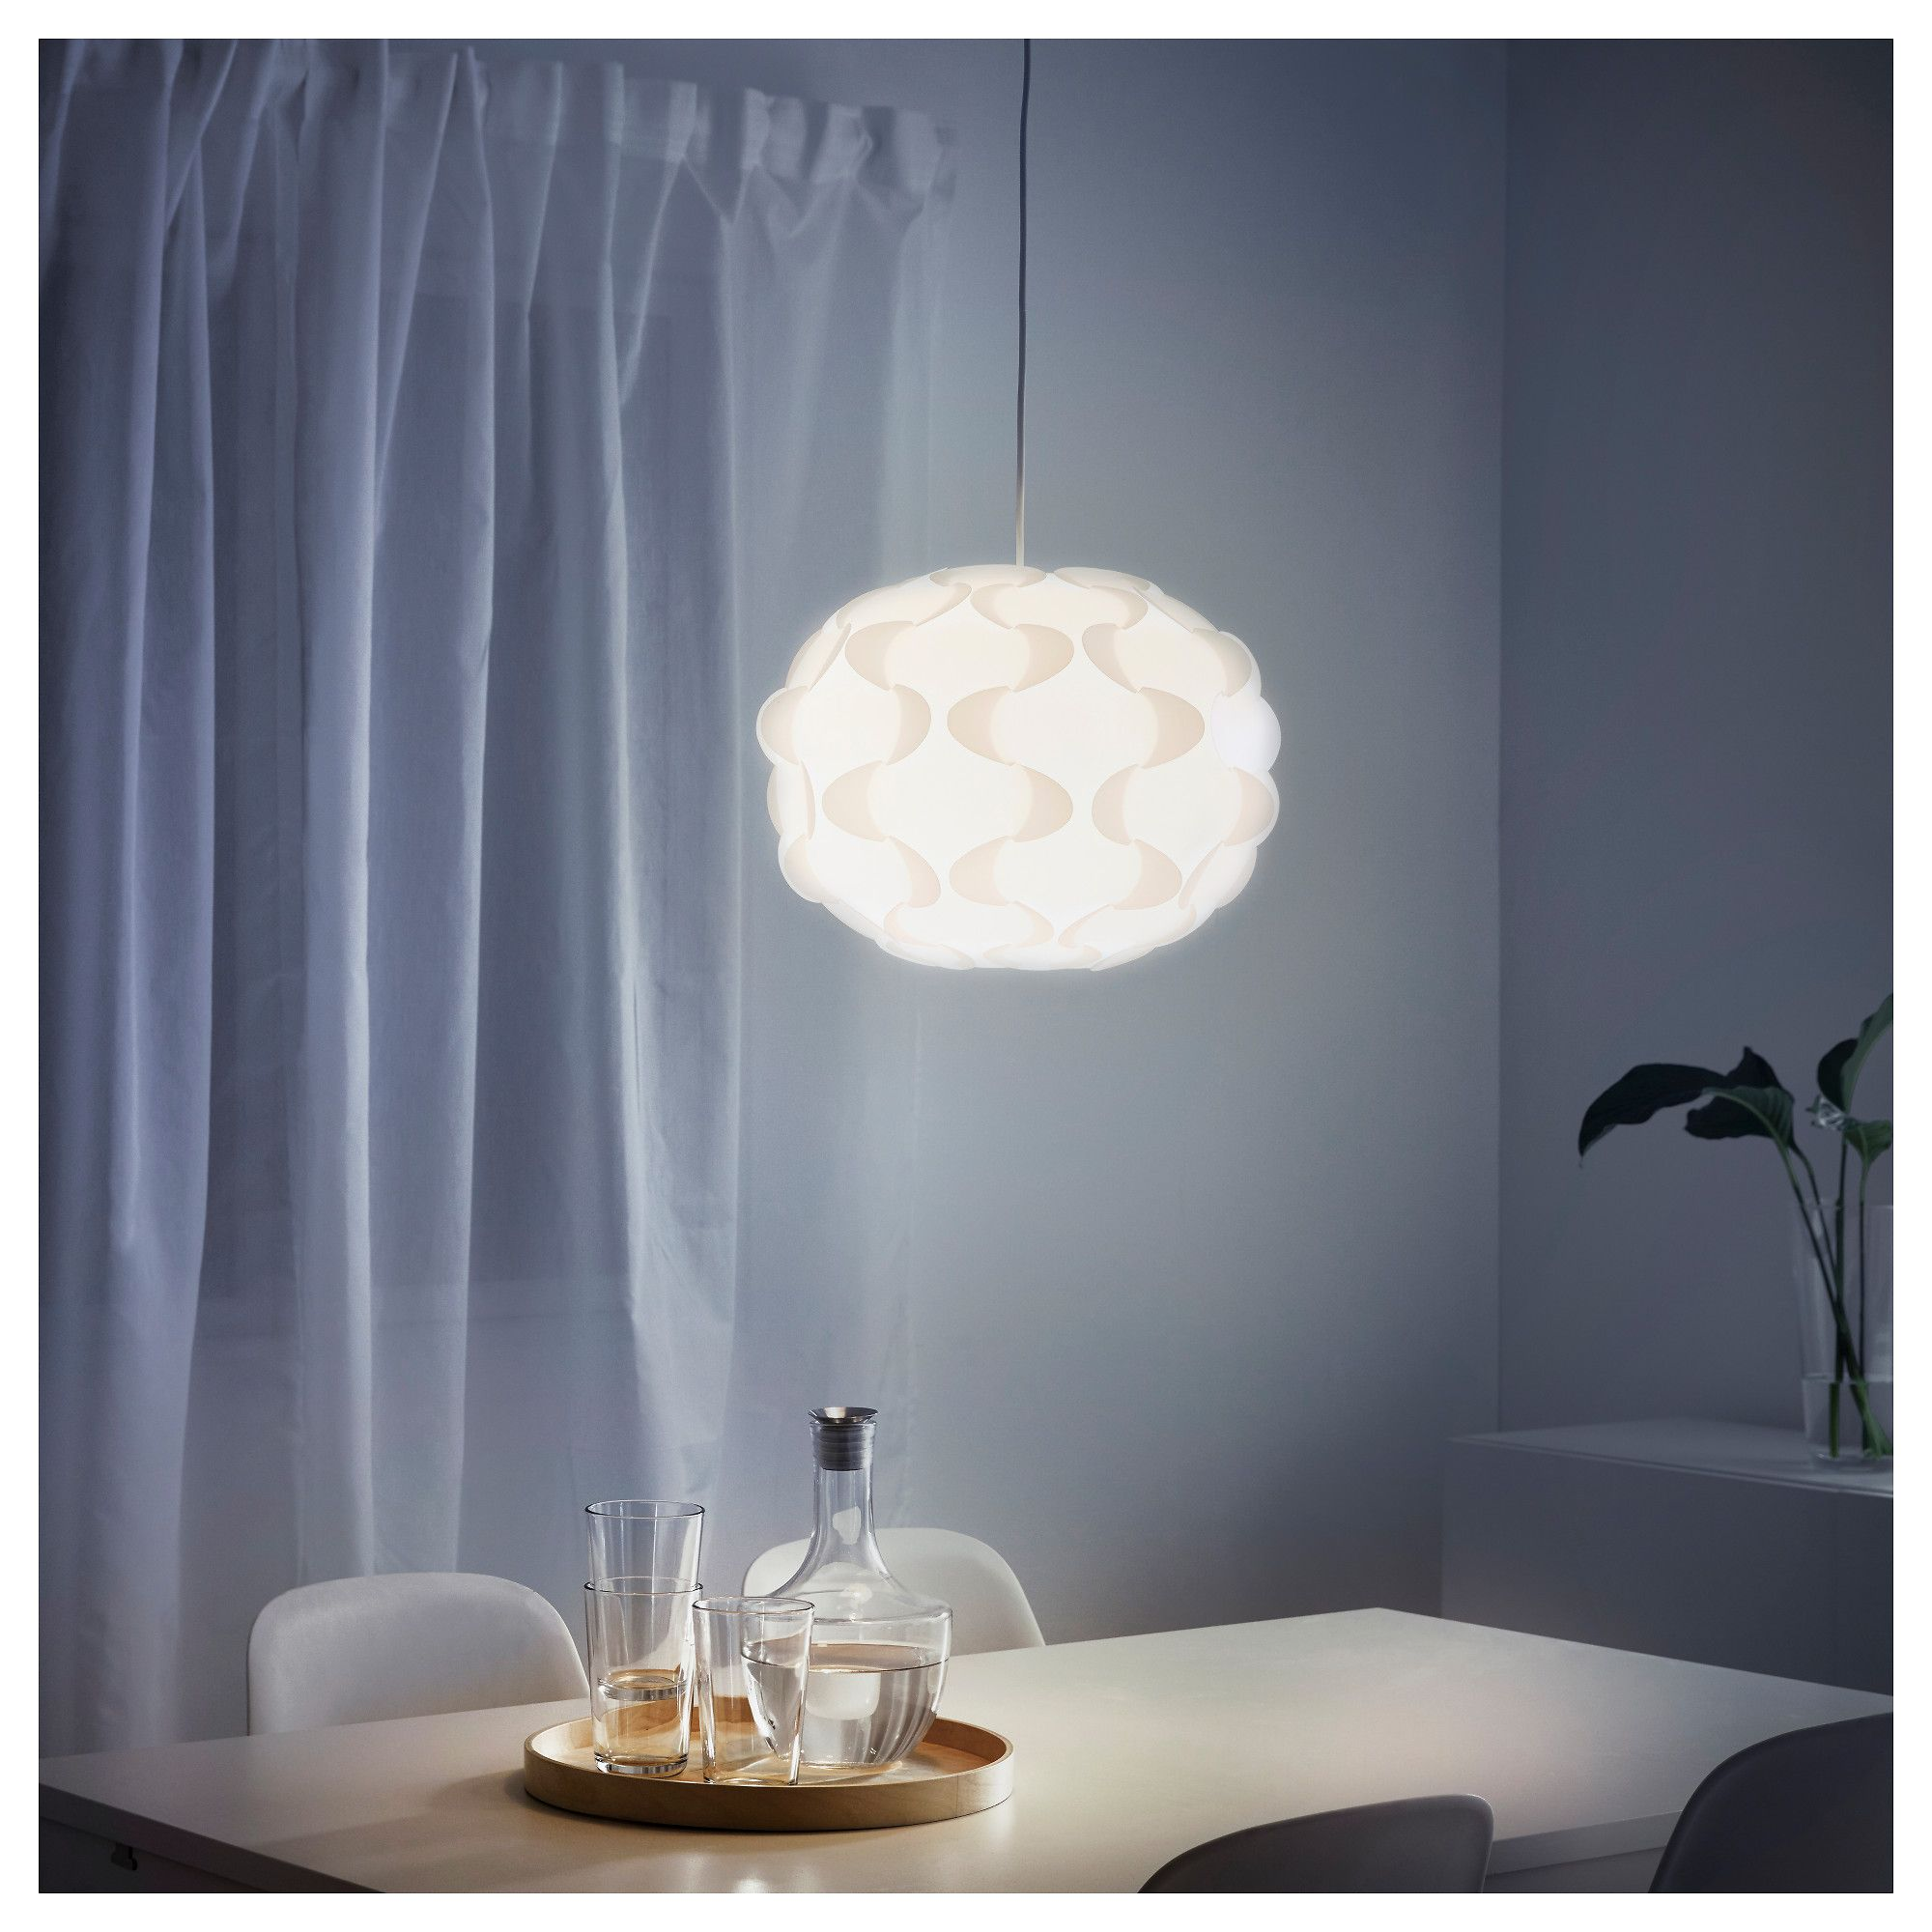 IKEA FILLSTA pendant lamp Diffused light that provides good general